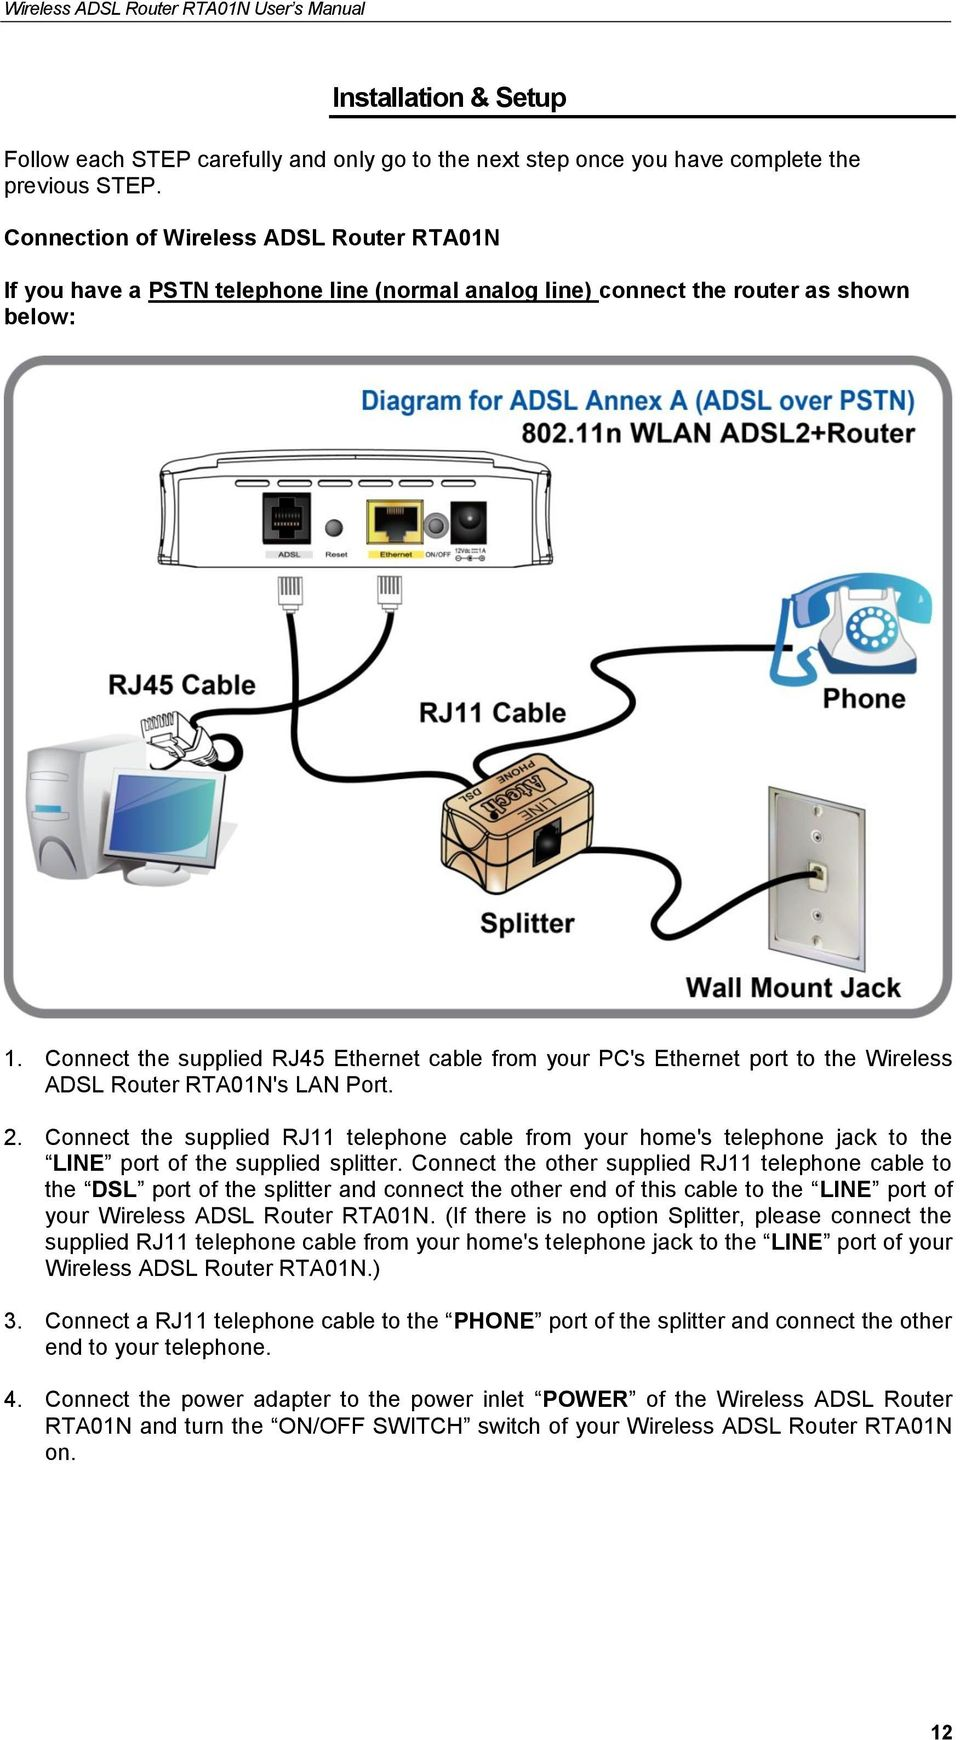 Wireless Adsl Router Rta01n User S Manual Pdf Rj11 Wiring Diagram For Connect The Supplied Rj45 Ethernet Cable From Your Pcs Port To